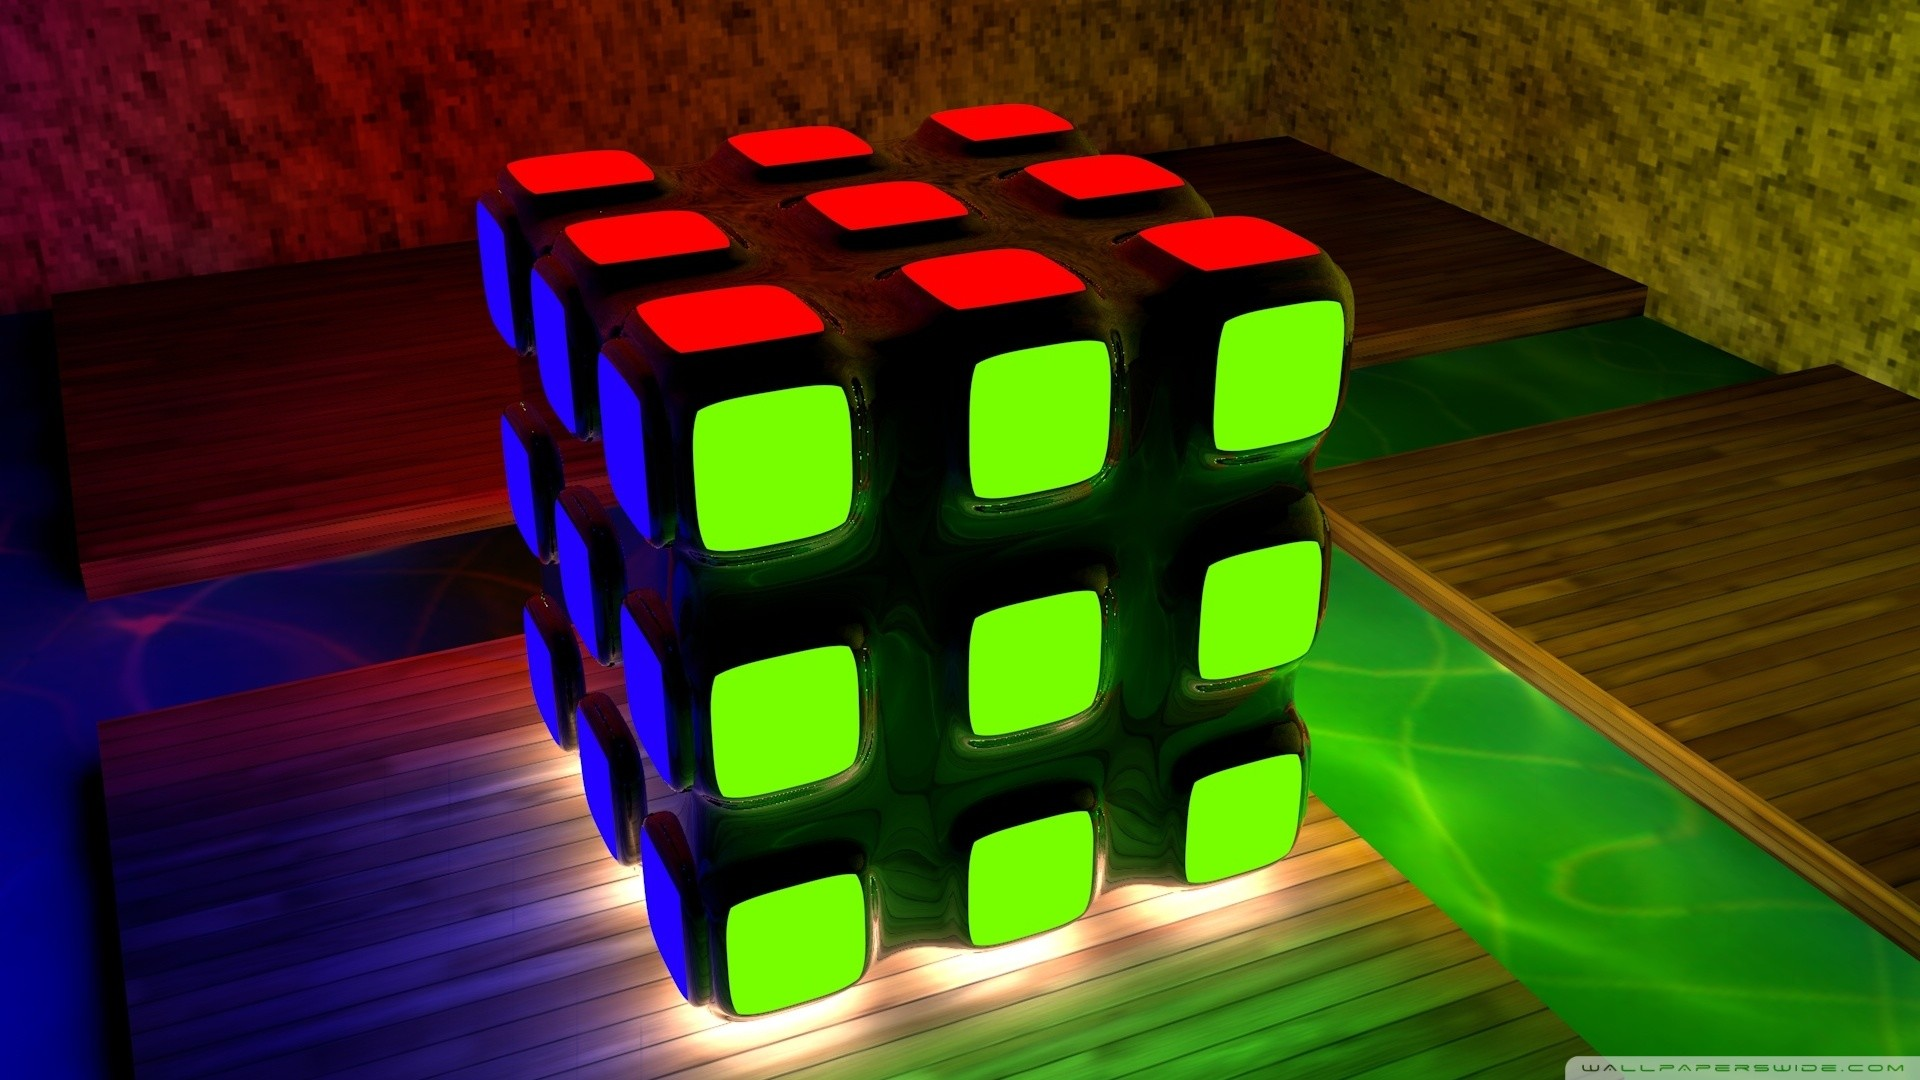 Rubiks Cube Wallpaper 76 Images